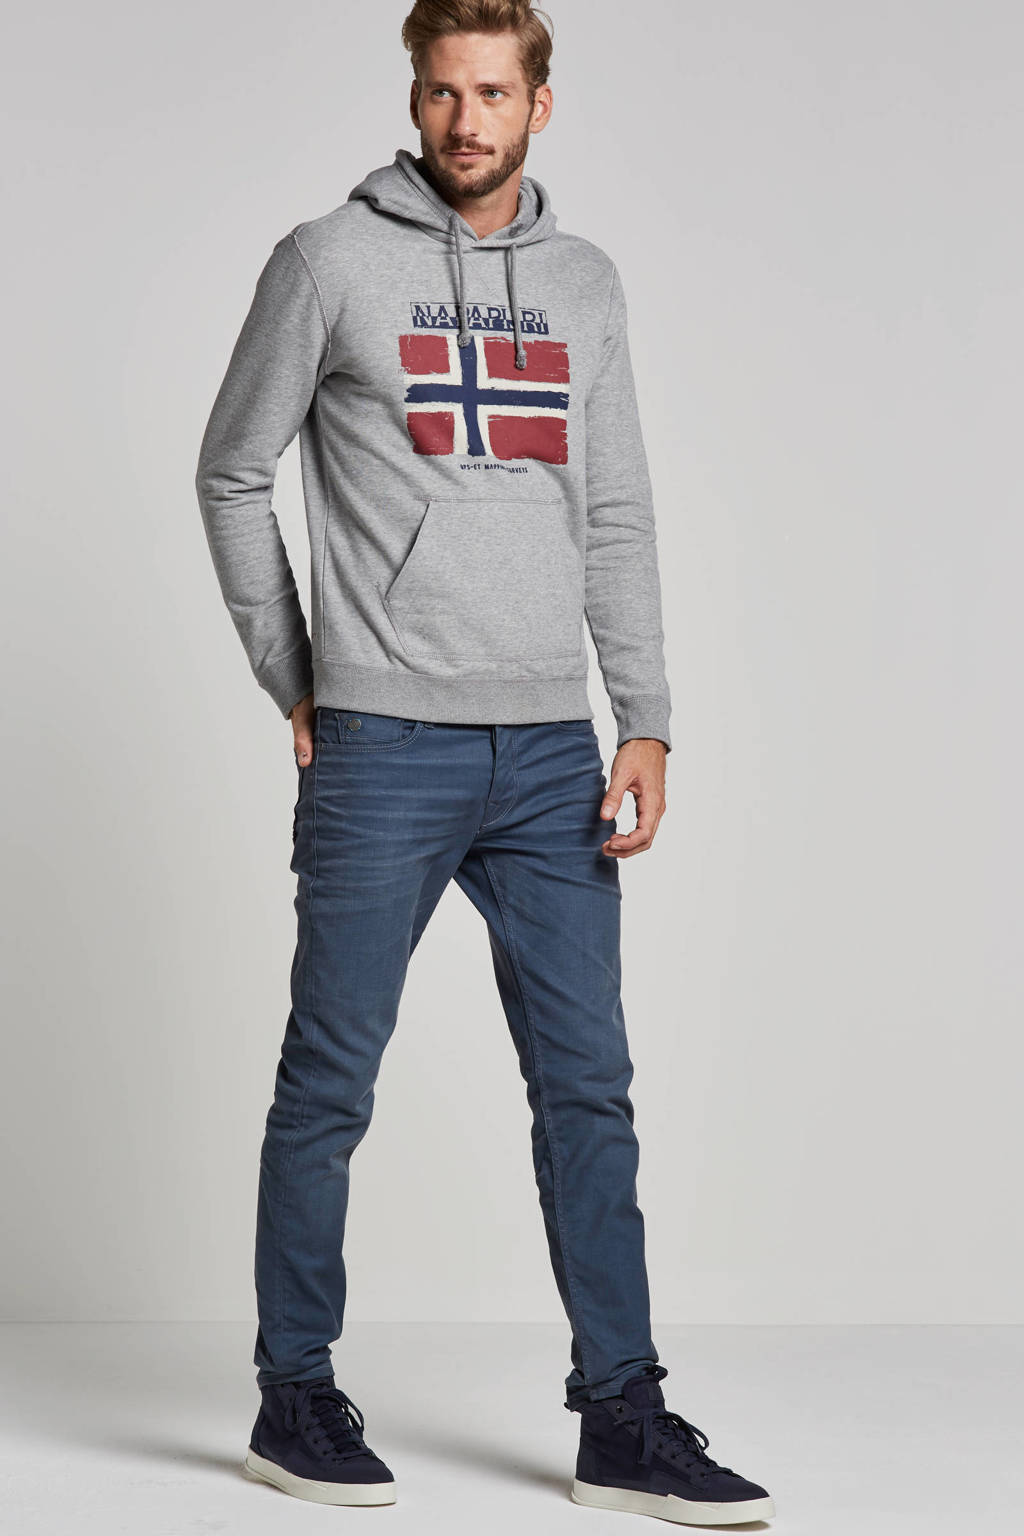 Cast Iron slim fit jeans Cope cope tapered grey, Cope tapered grey